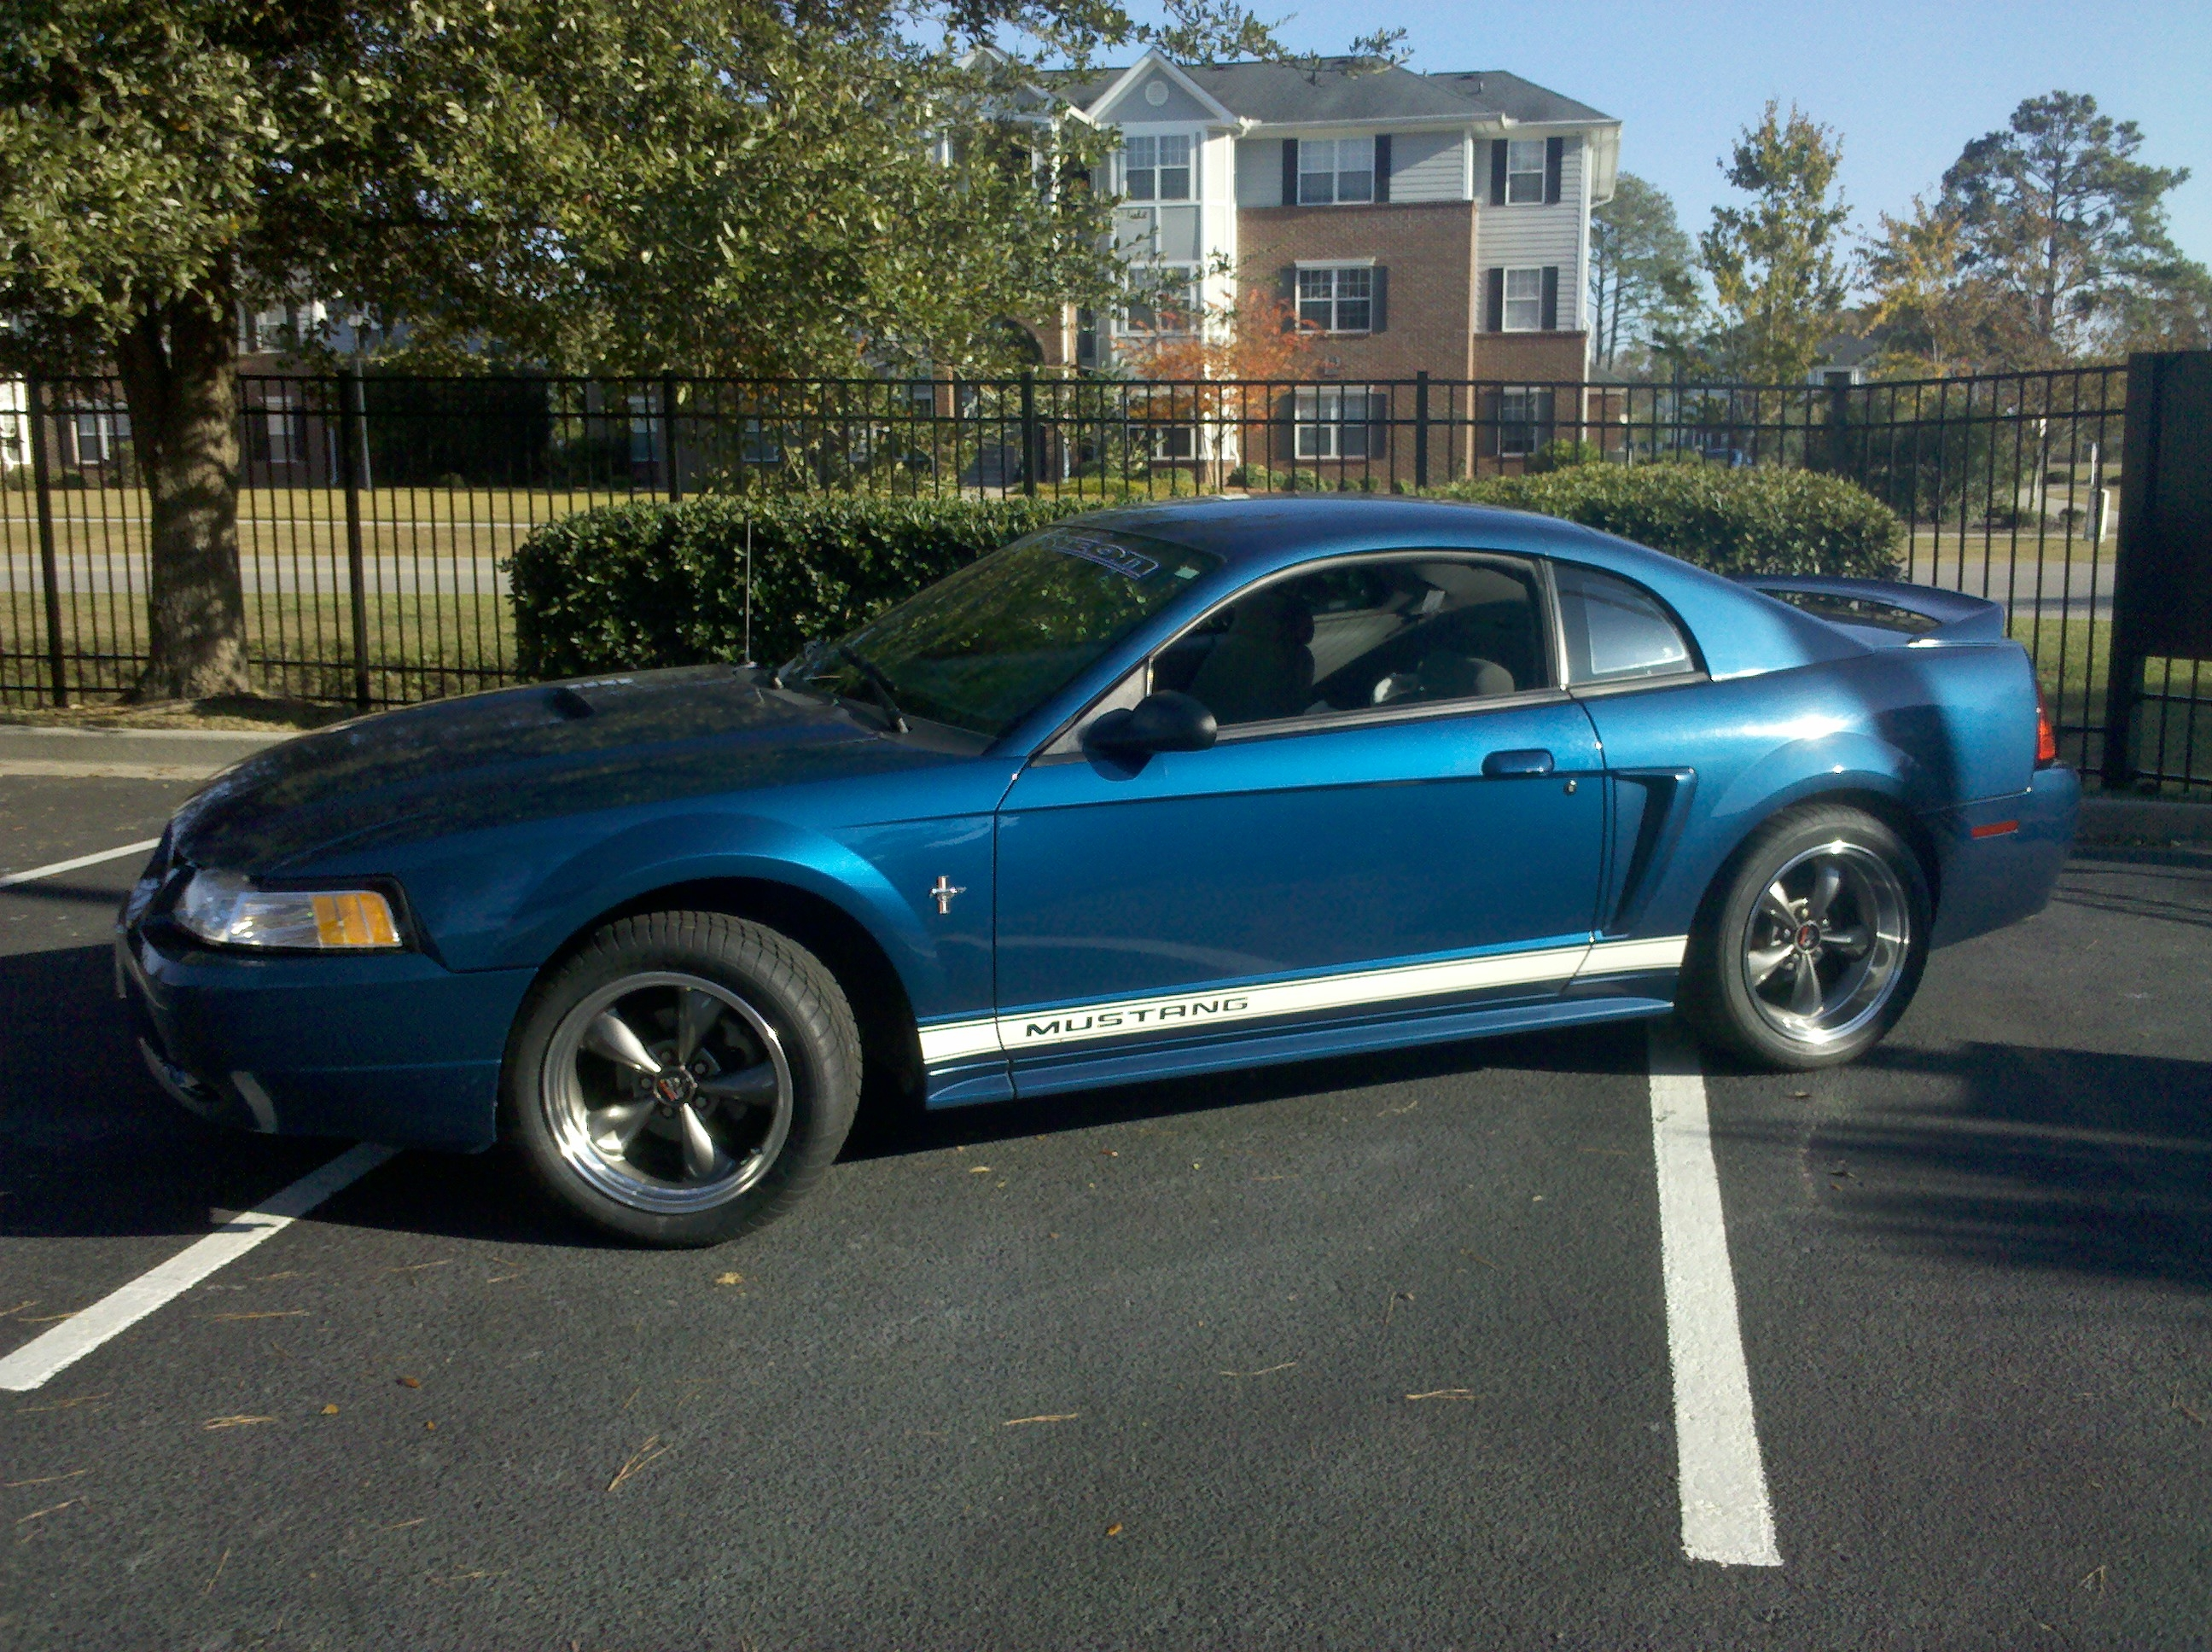 sonic v6 stang 2000 ford mustangcoupe 2d specs photos modification info at cardomain. Black Bedroom Furniture Sets. Home Design Ideas